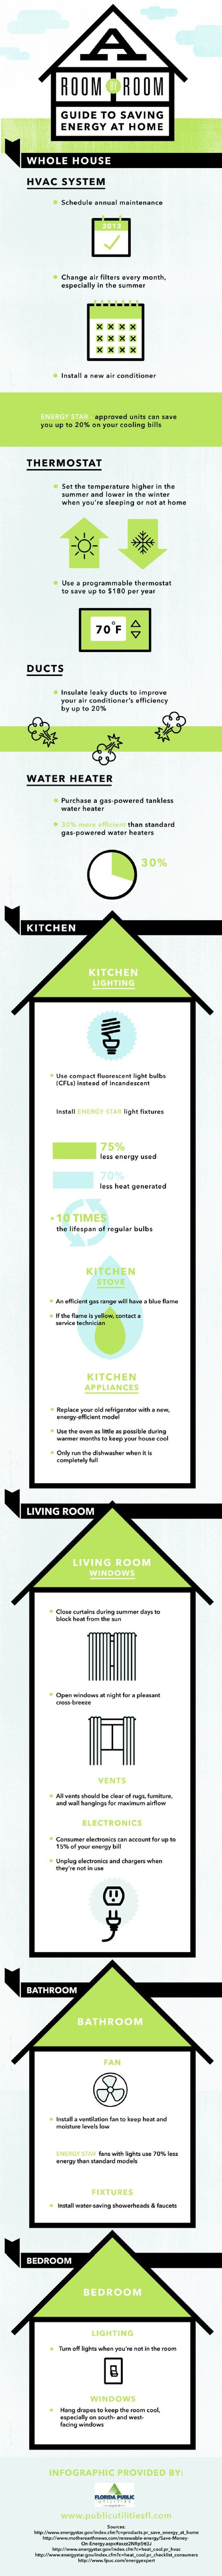 Replacing your old refrigerator with one that is more energy-efficient can save you lots of money on your energy bills. For more eco-friendly advice and interesting facts, this infographic has the goods.